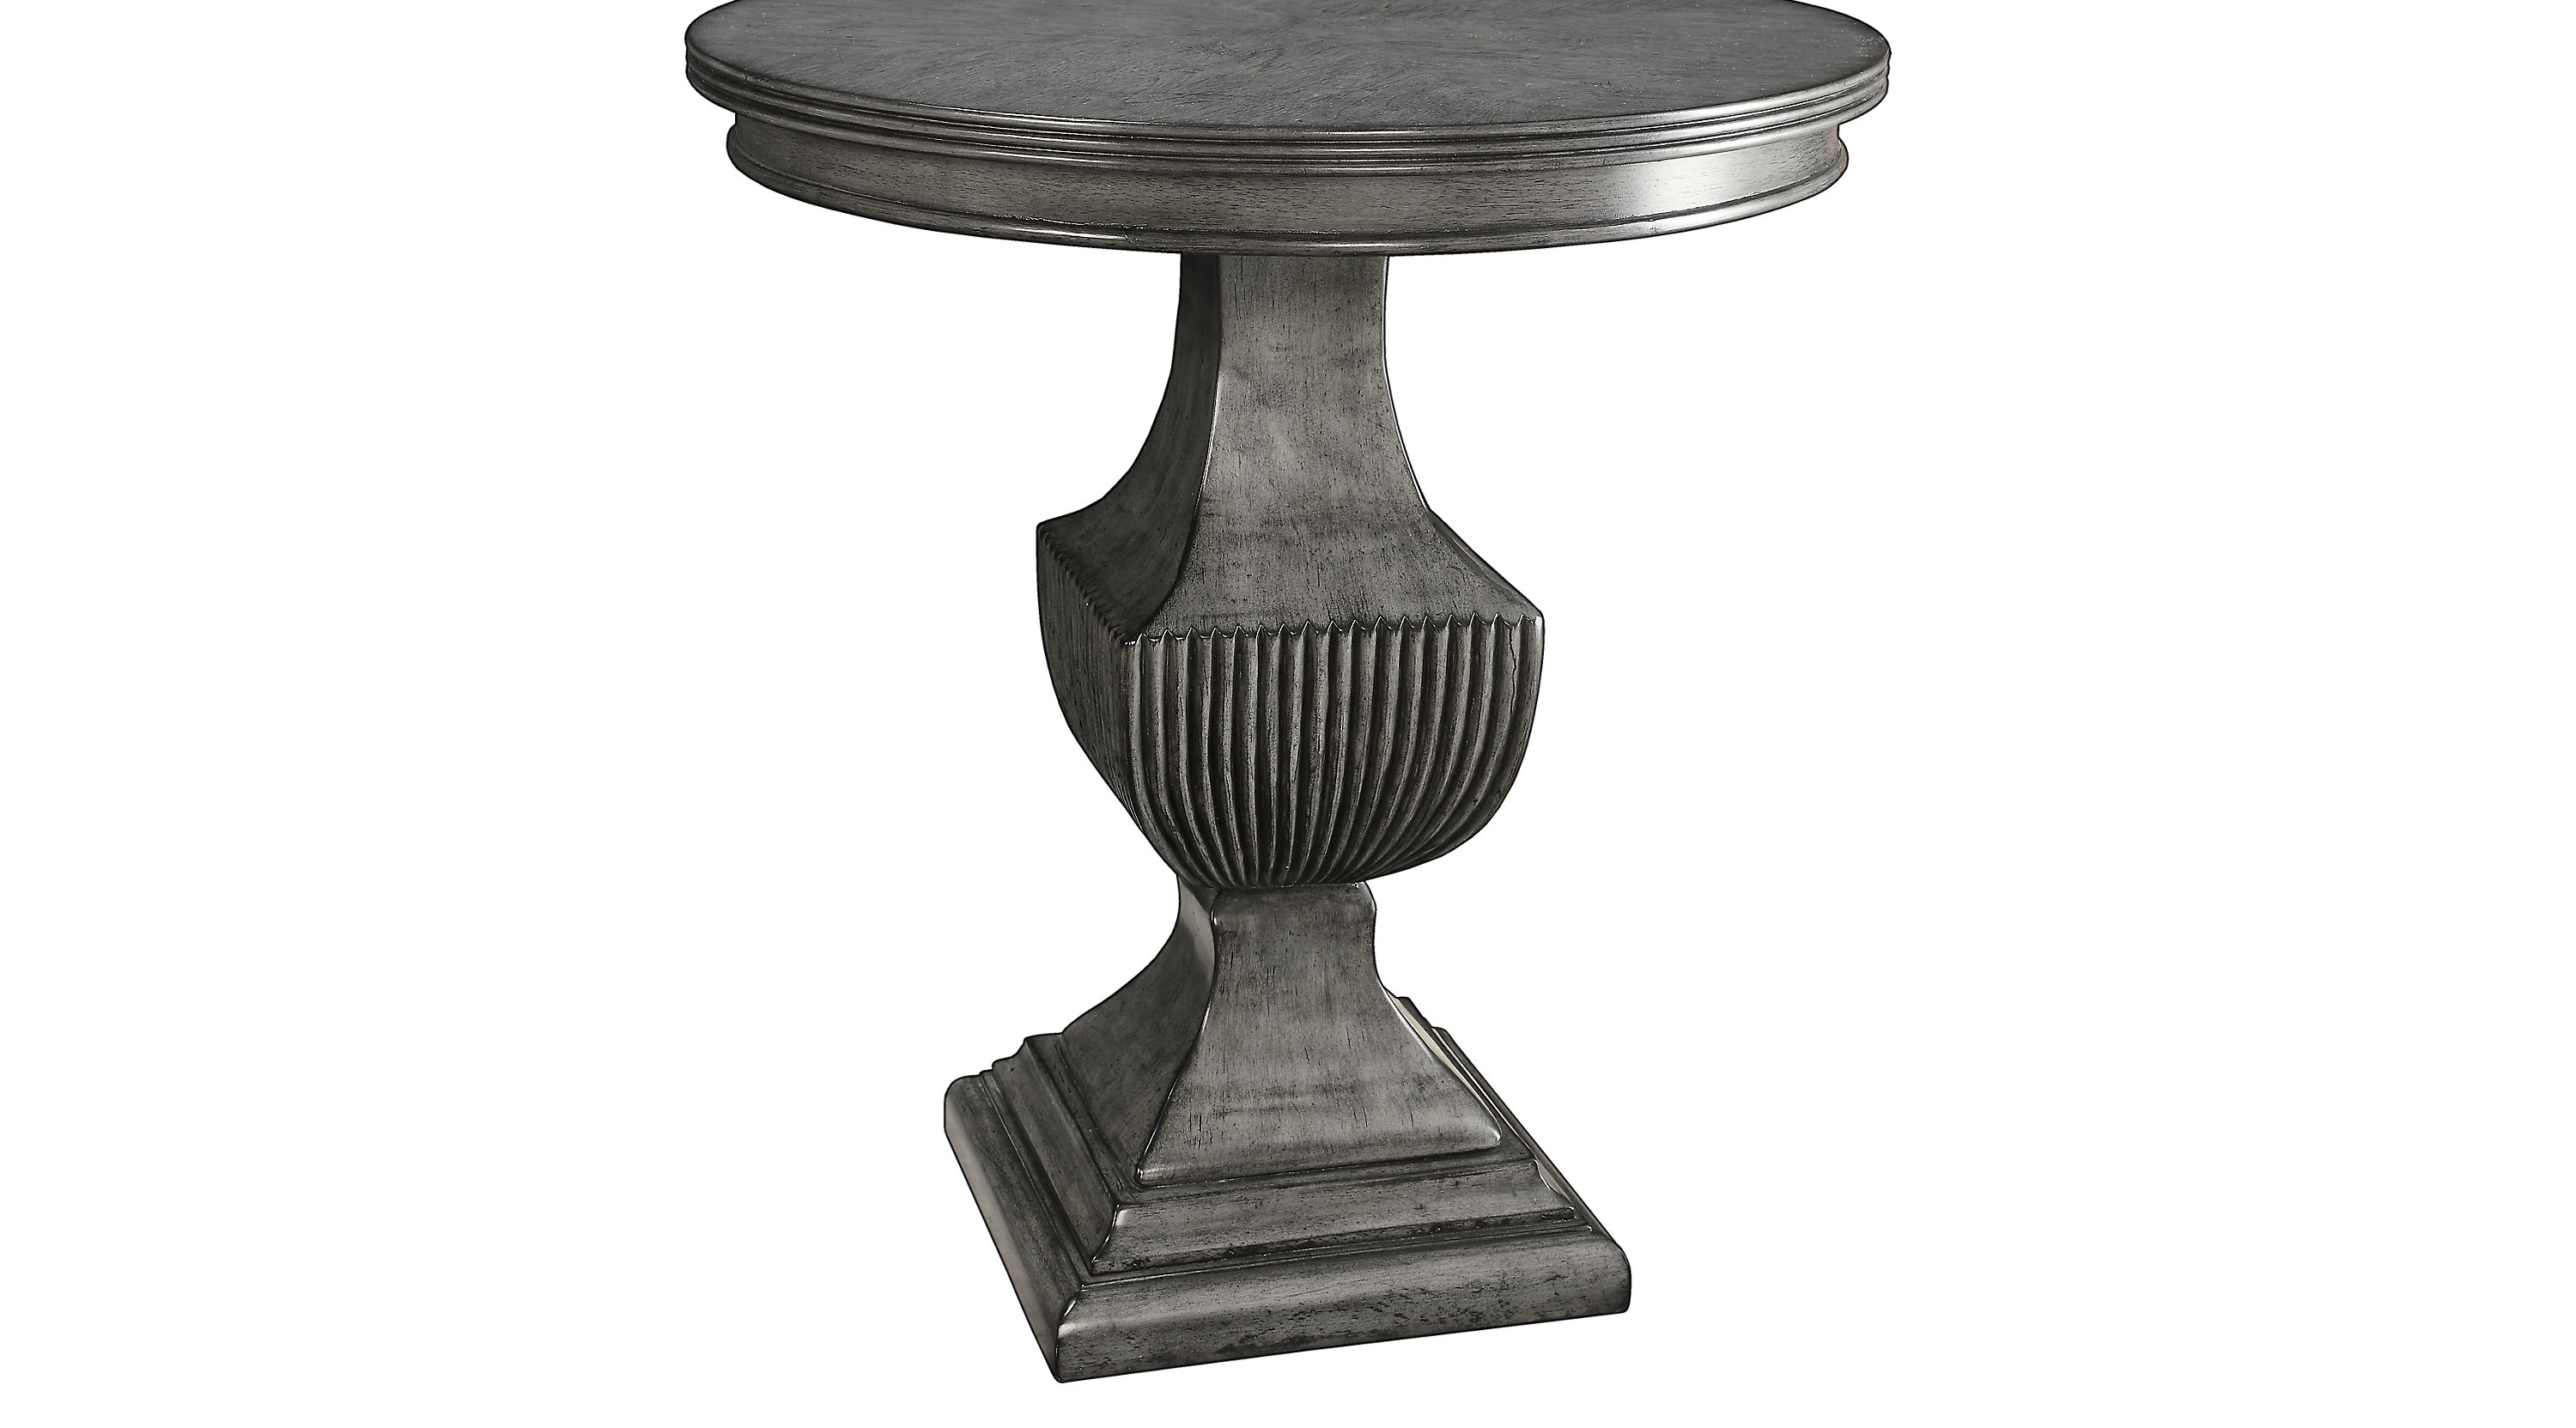 gray accent table weathered kearsley traditional threshold fretwork teal wicker drum next home nest tables round center for living room nautical dining bar height legs glass